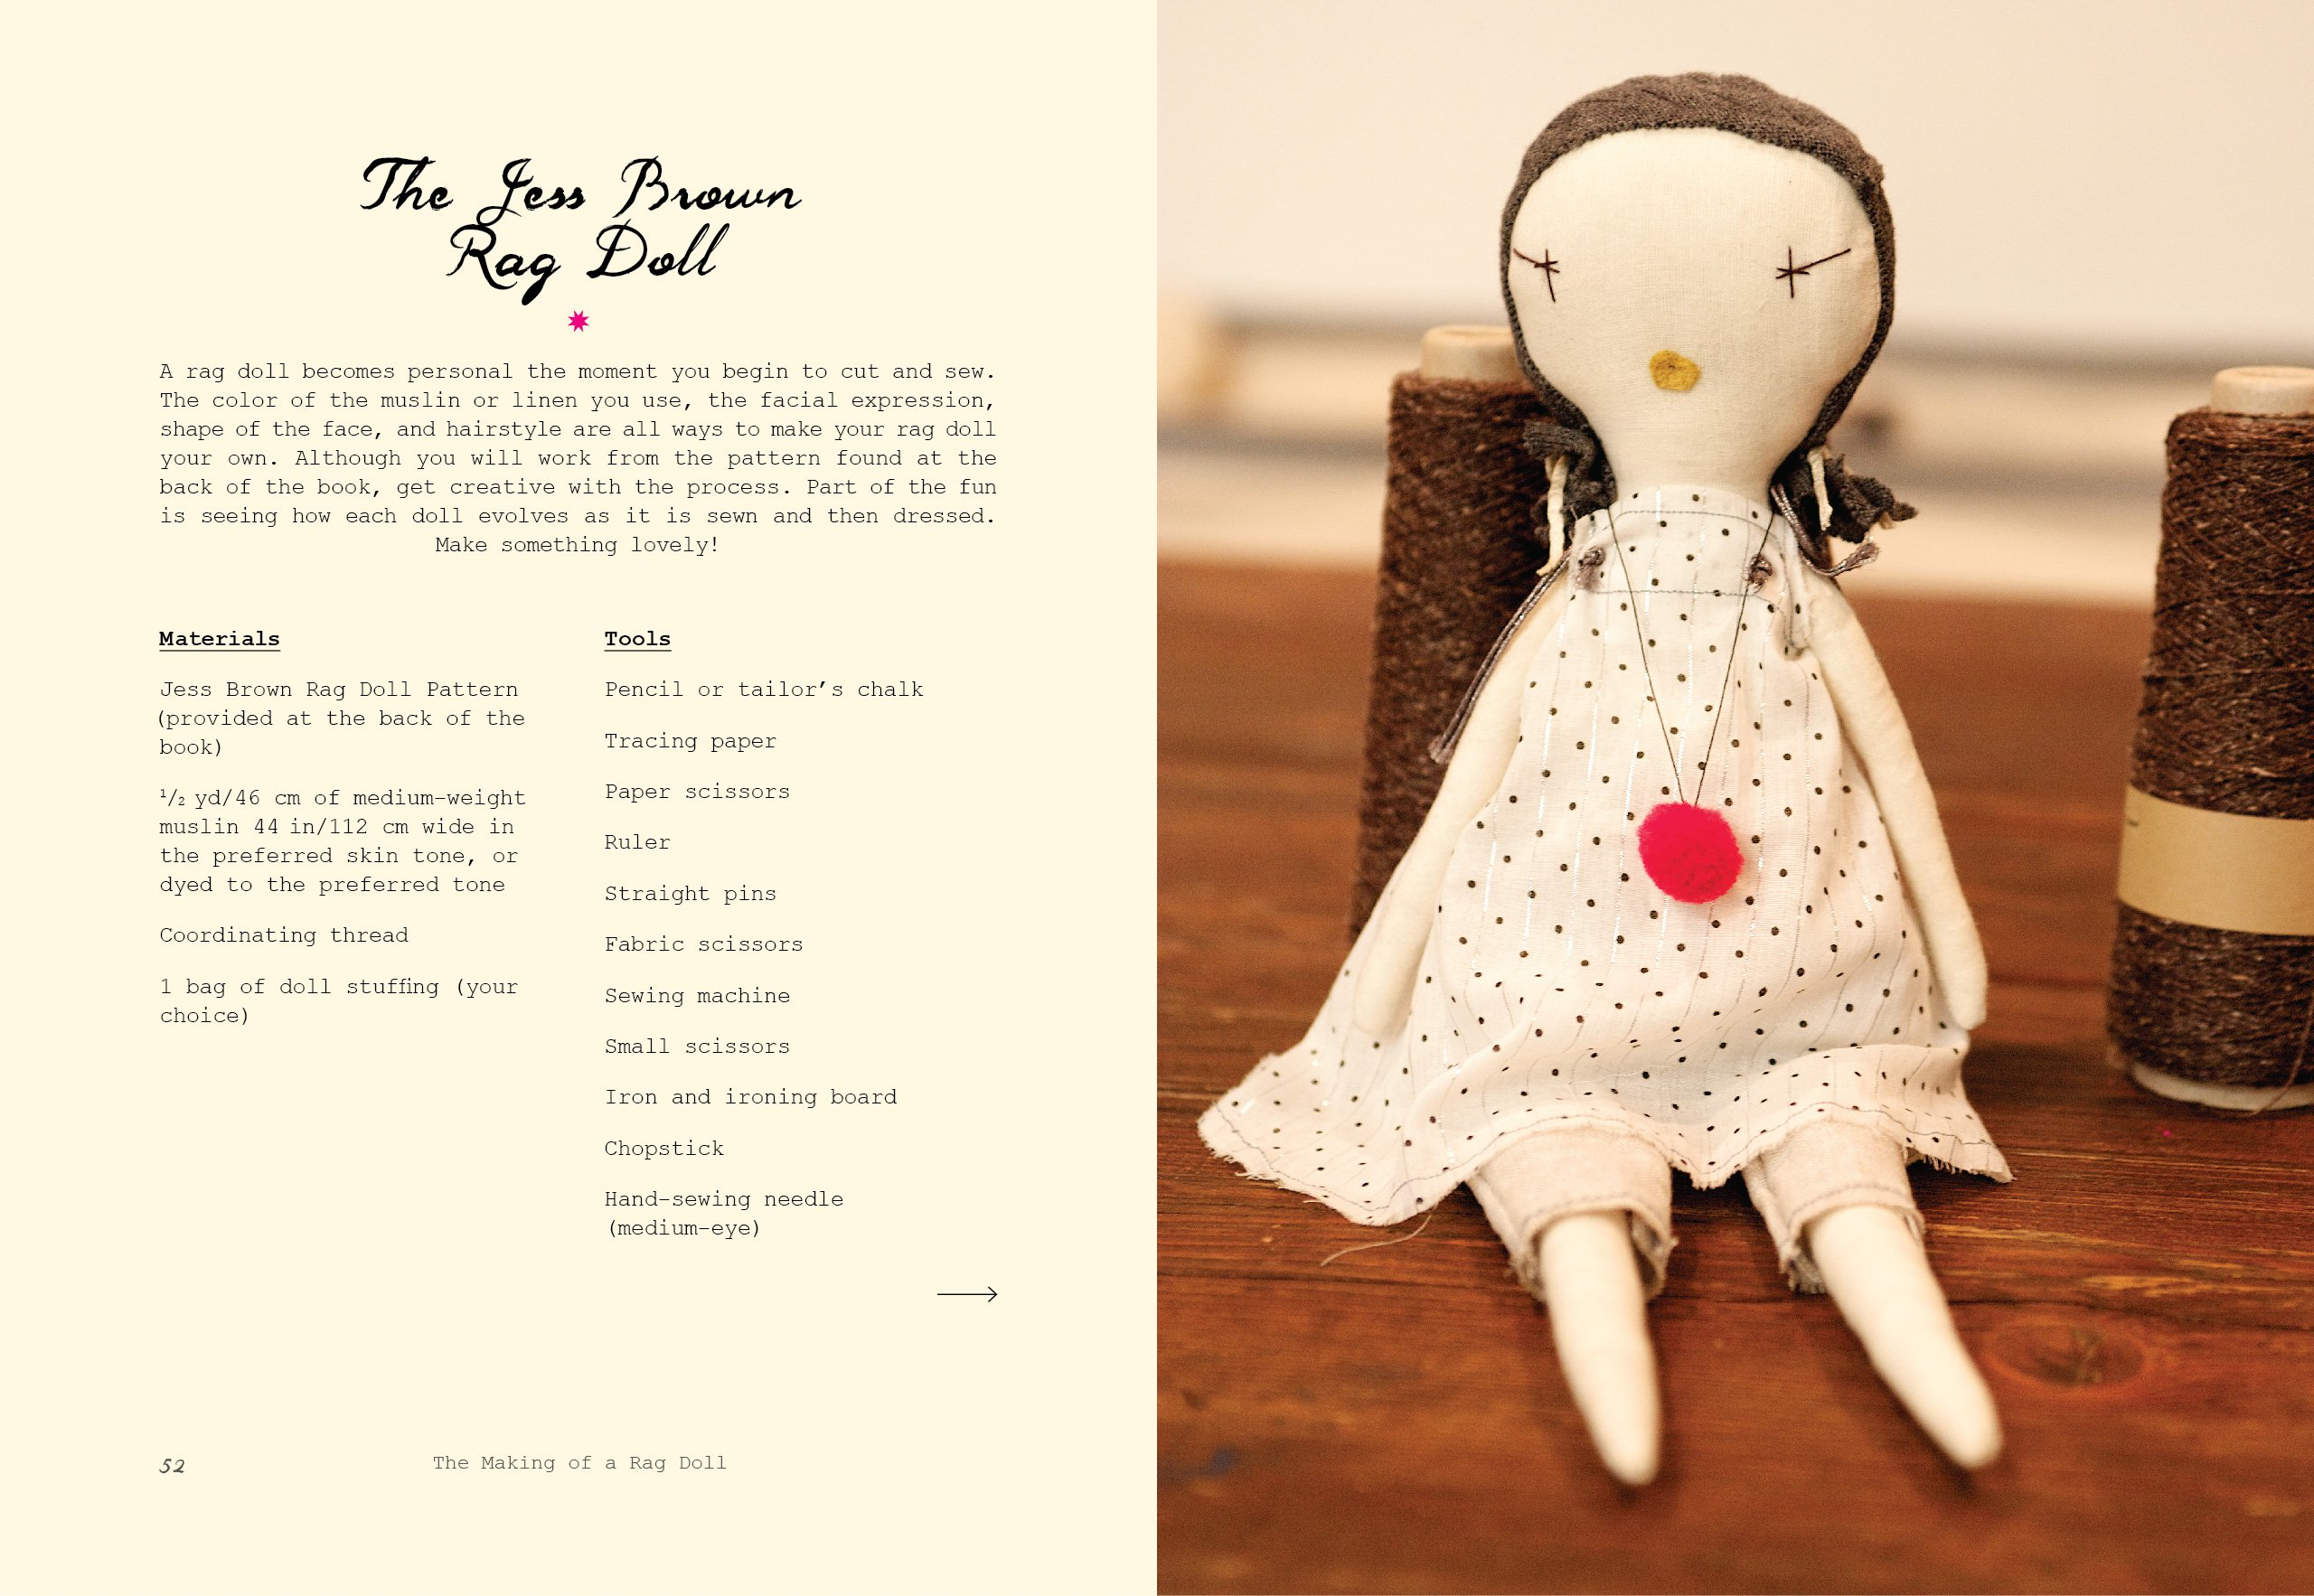 The Making of a Rag Doll: Design & Sew Modern Heirlooms: Jess Brown ...